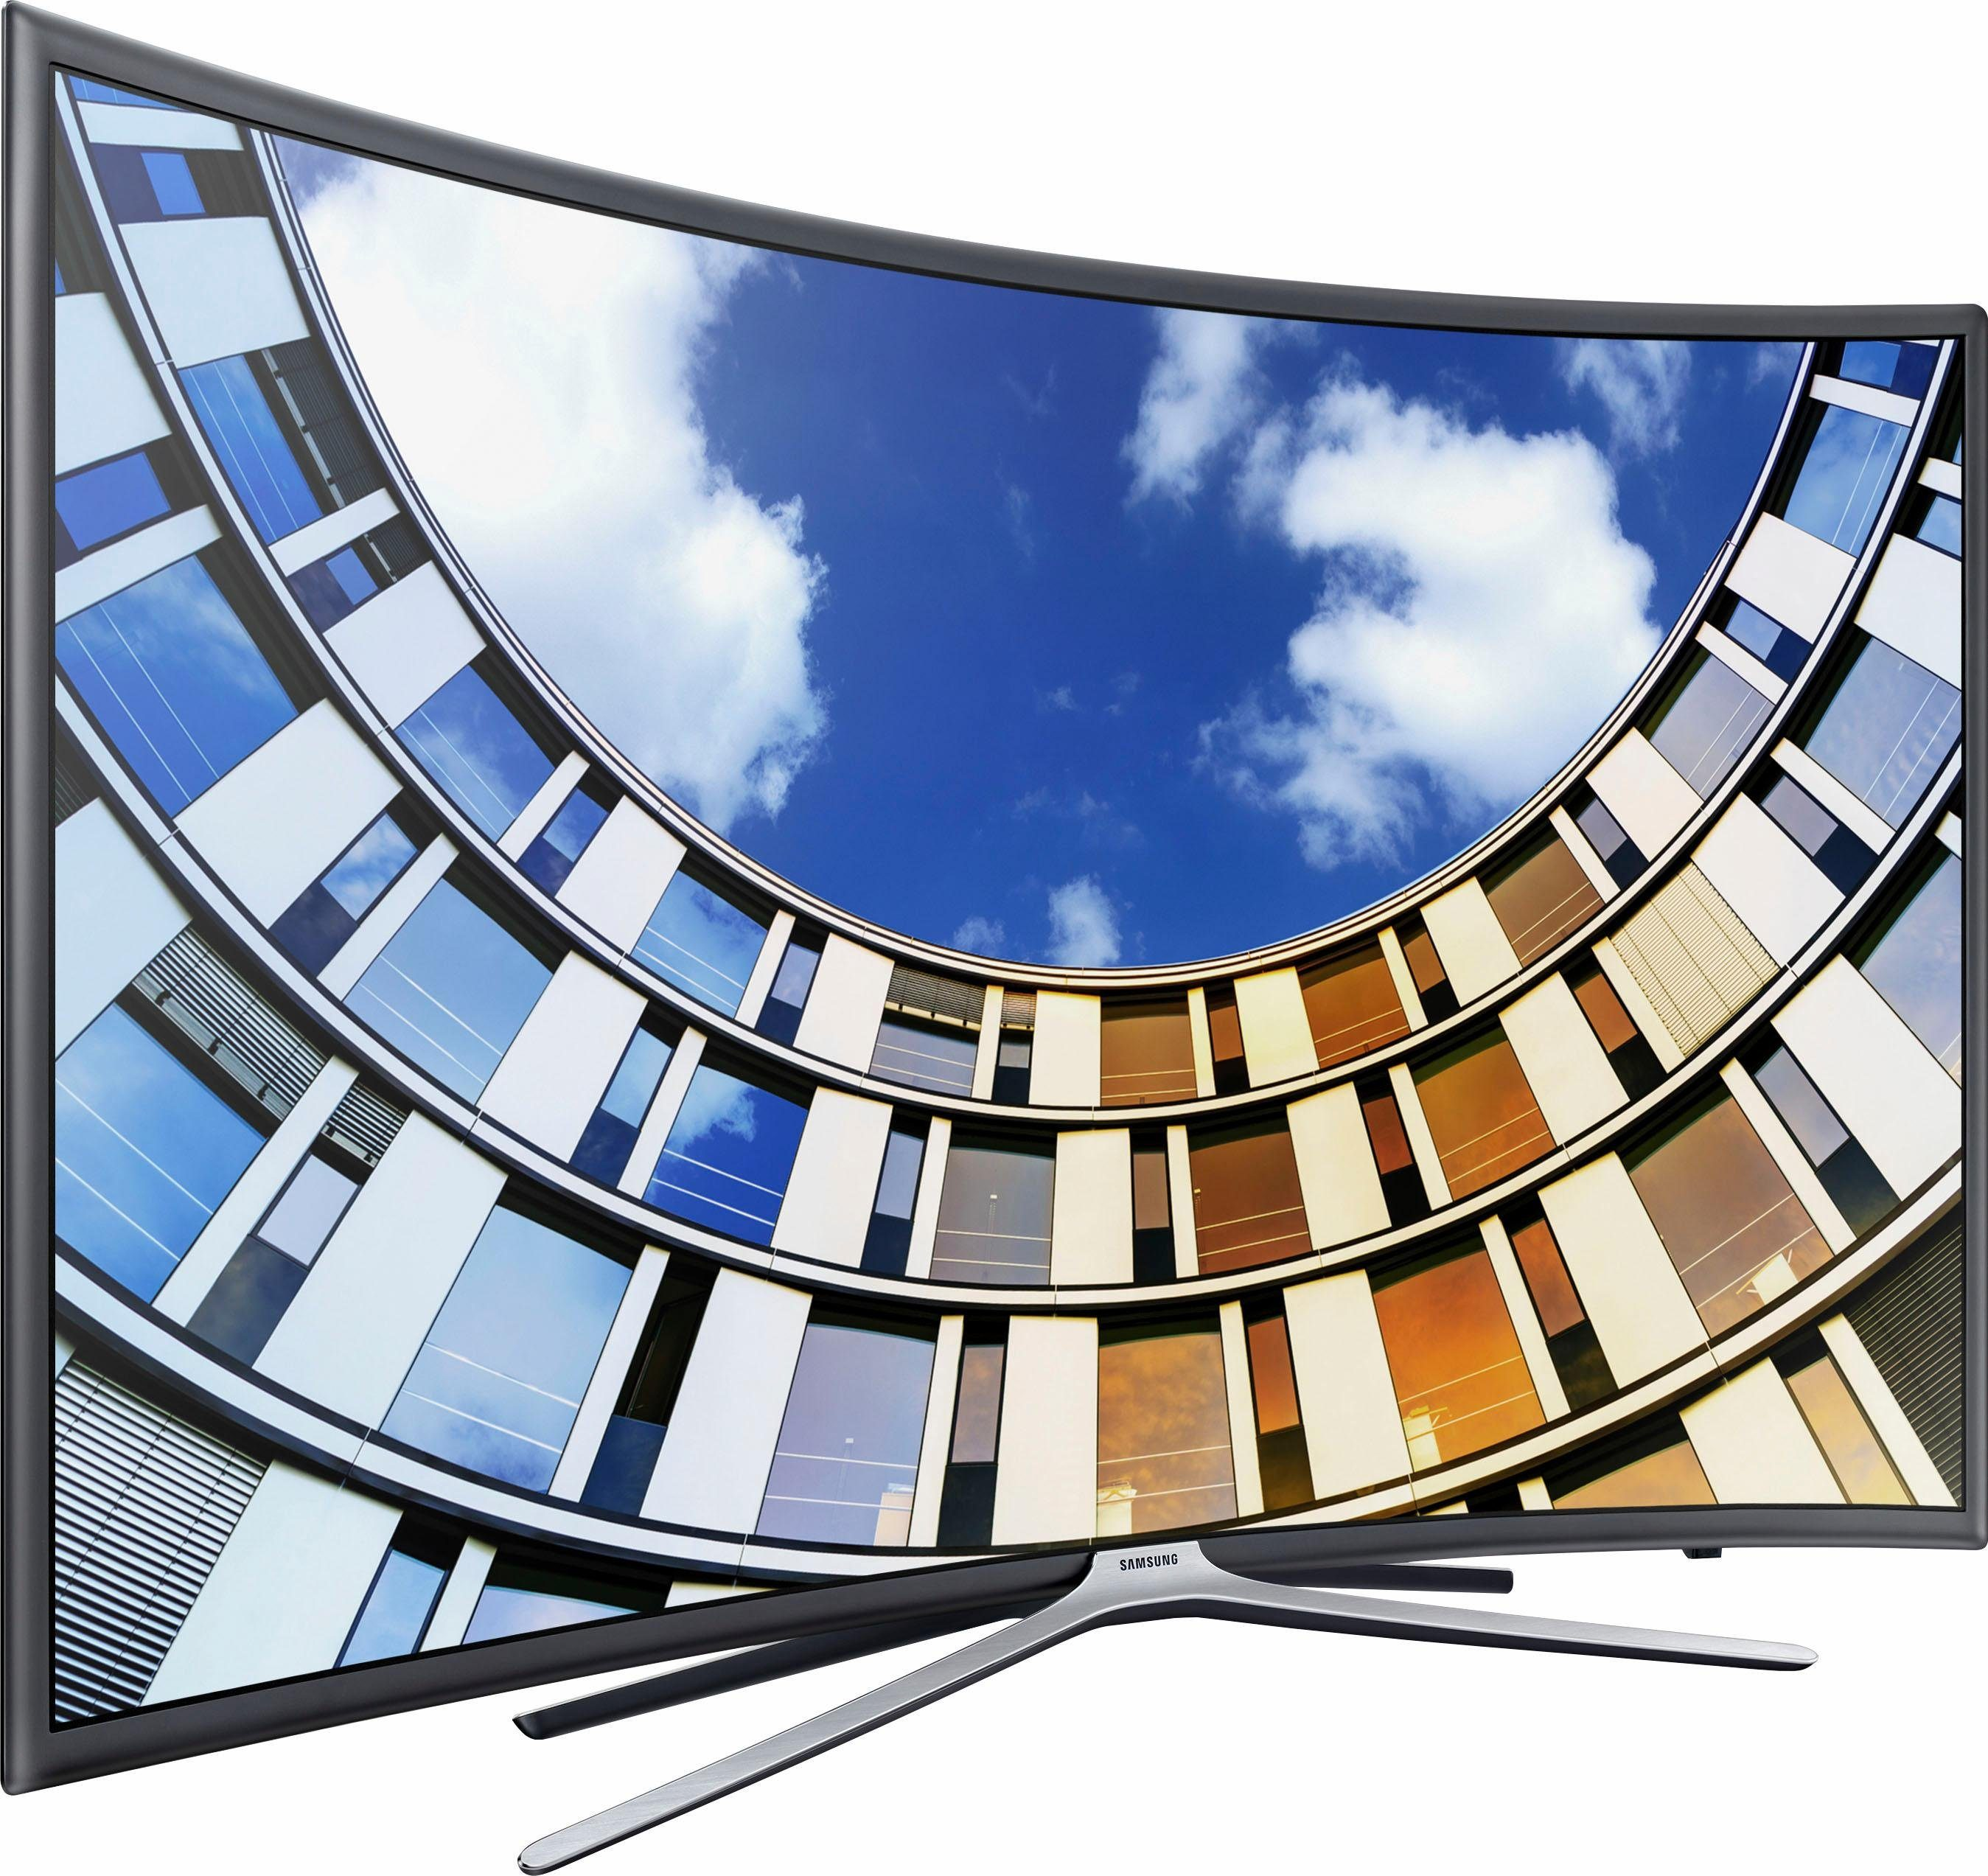 Samsung UE49M6399AUXZG Curved-LED-Fernseher (123 cm/49 Zoll, Full HD, Smart-TV)